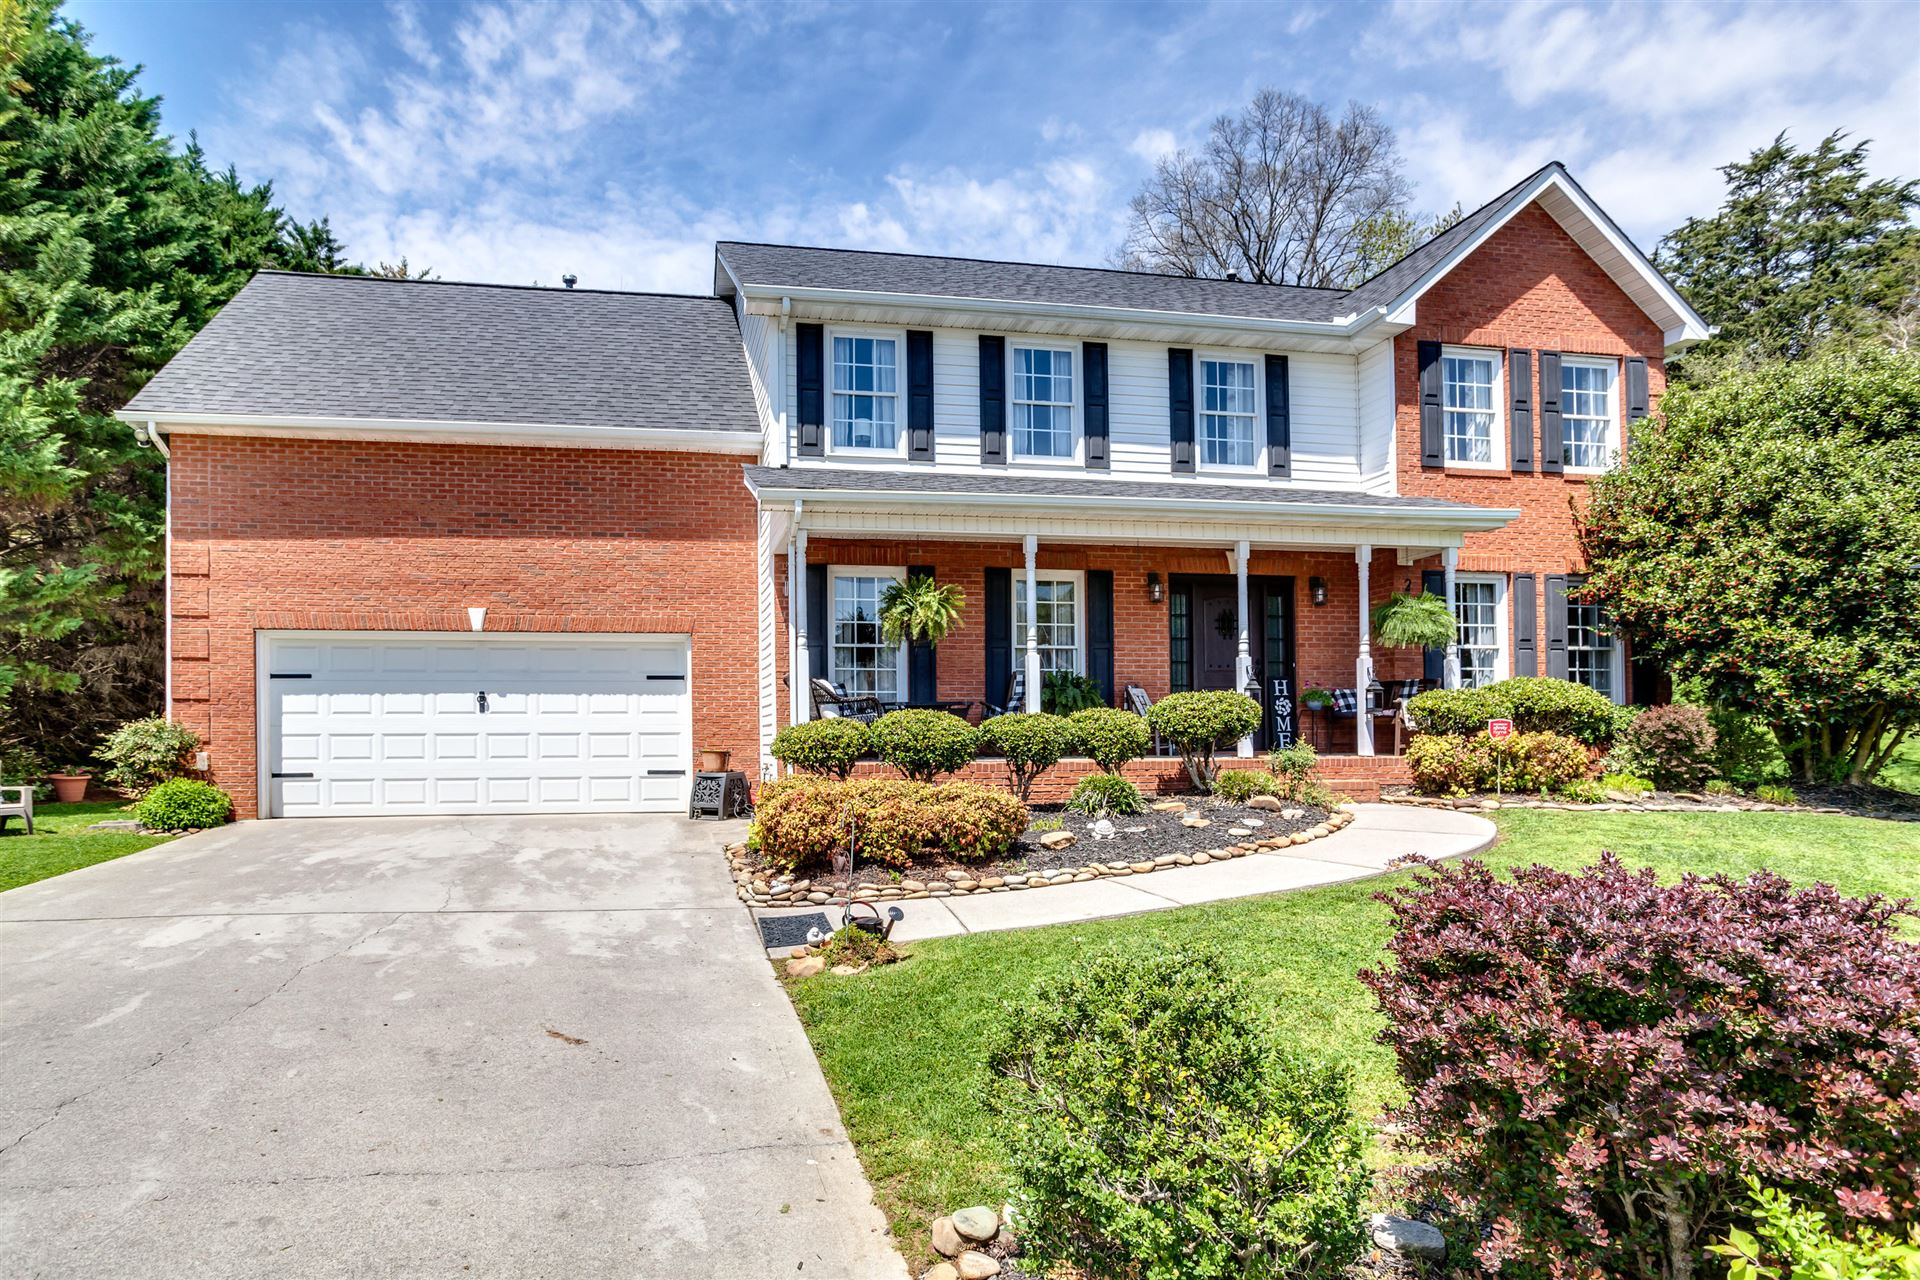 Photo of 2922 Cherry Branch Drive, Knoxville, TN 37938 (MLS # 1149575)